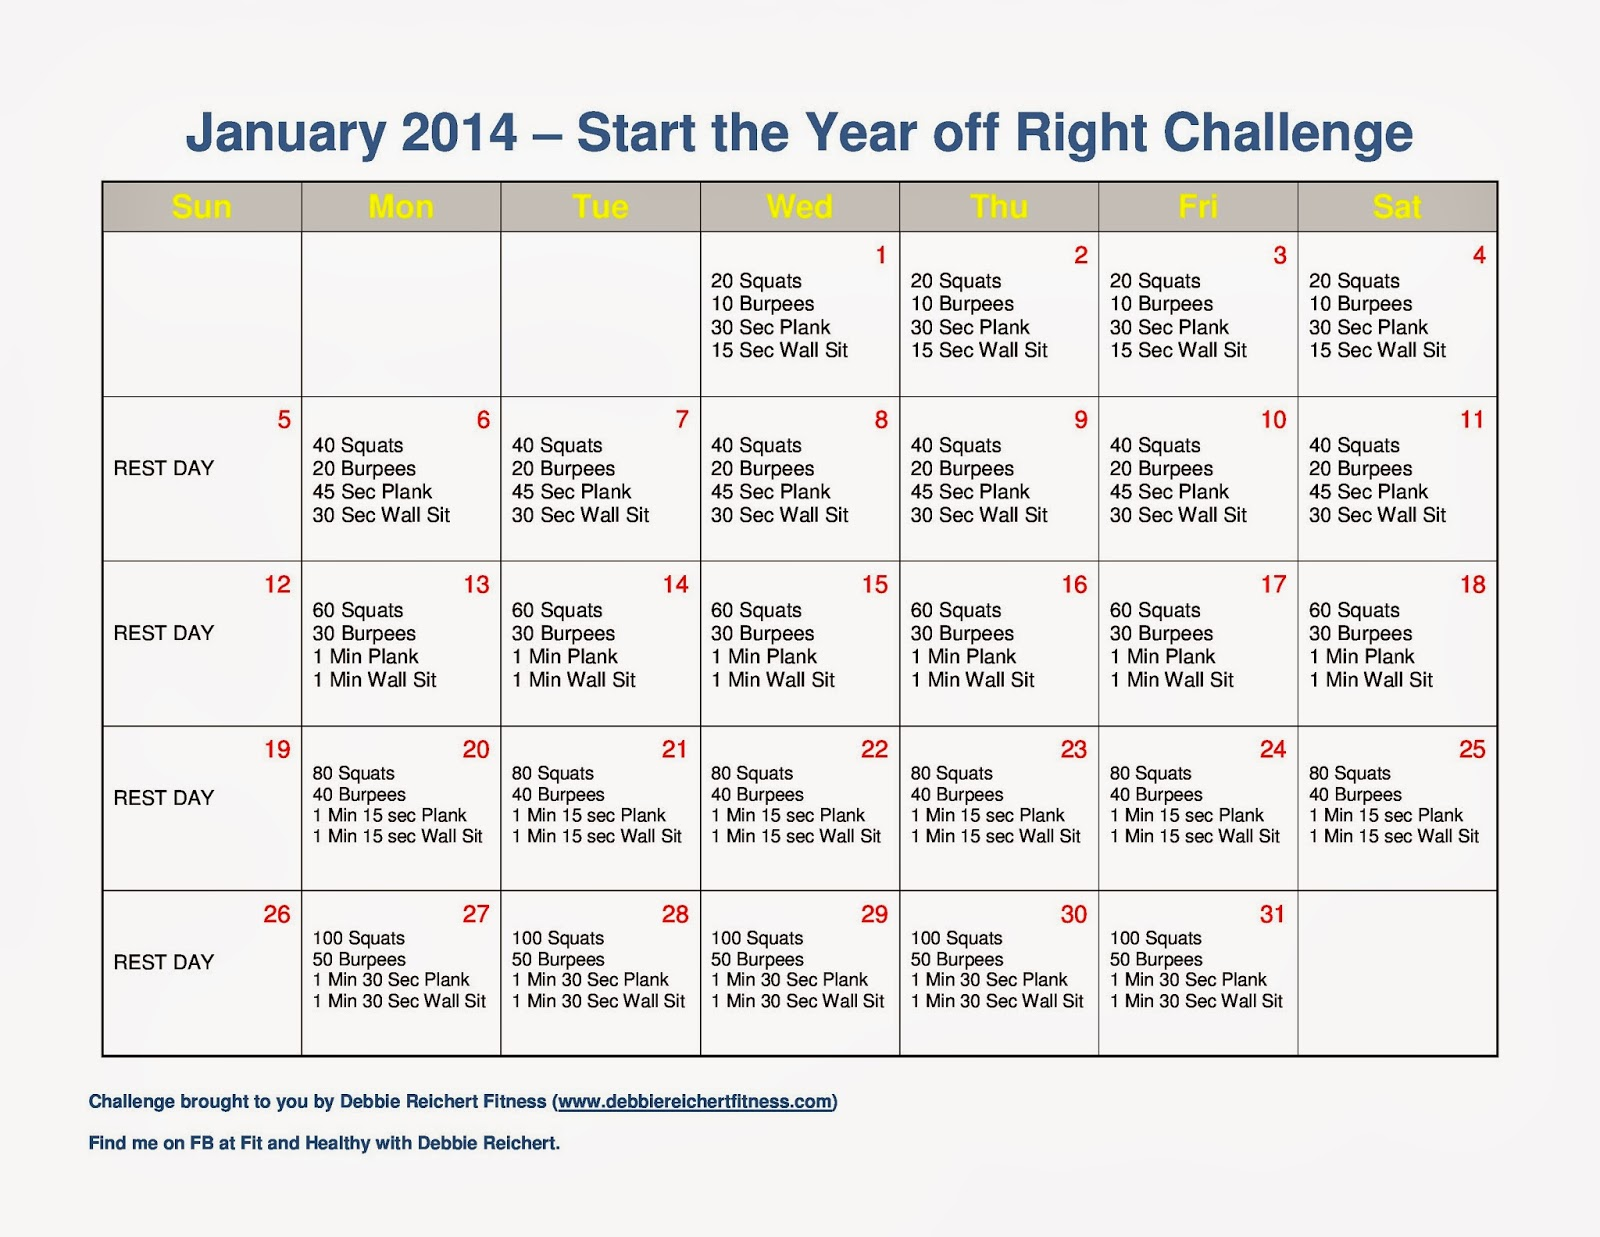 January 2014 Fitness Challenge - Fit and Healthy with Debbie